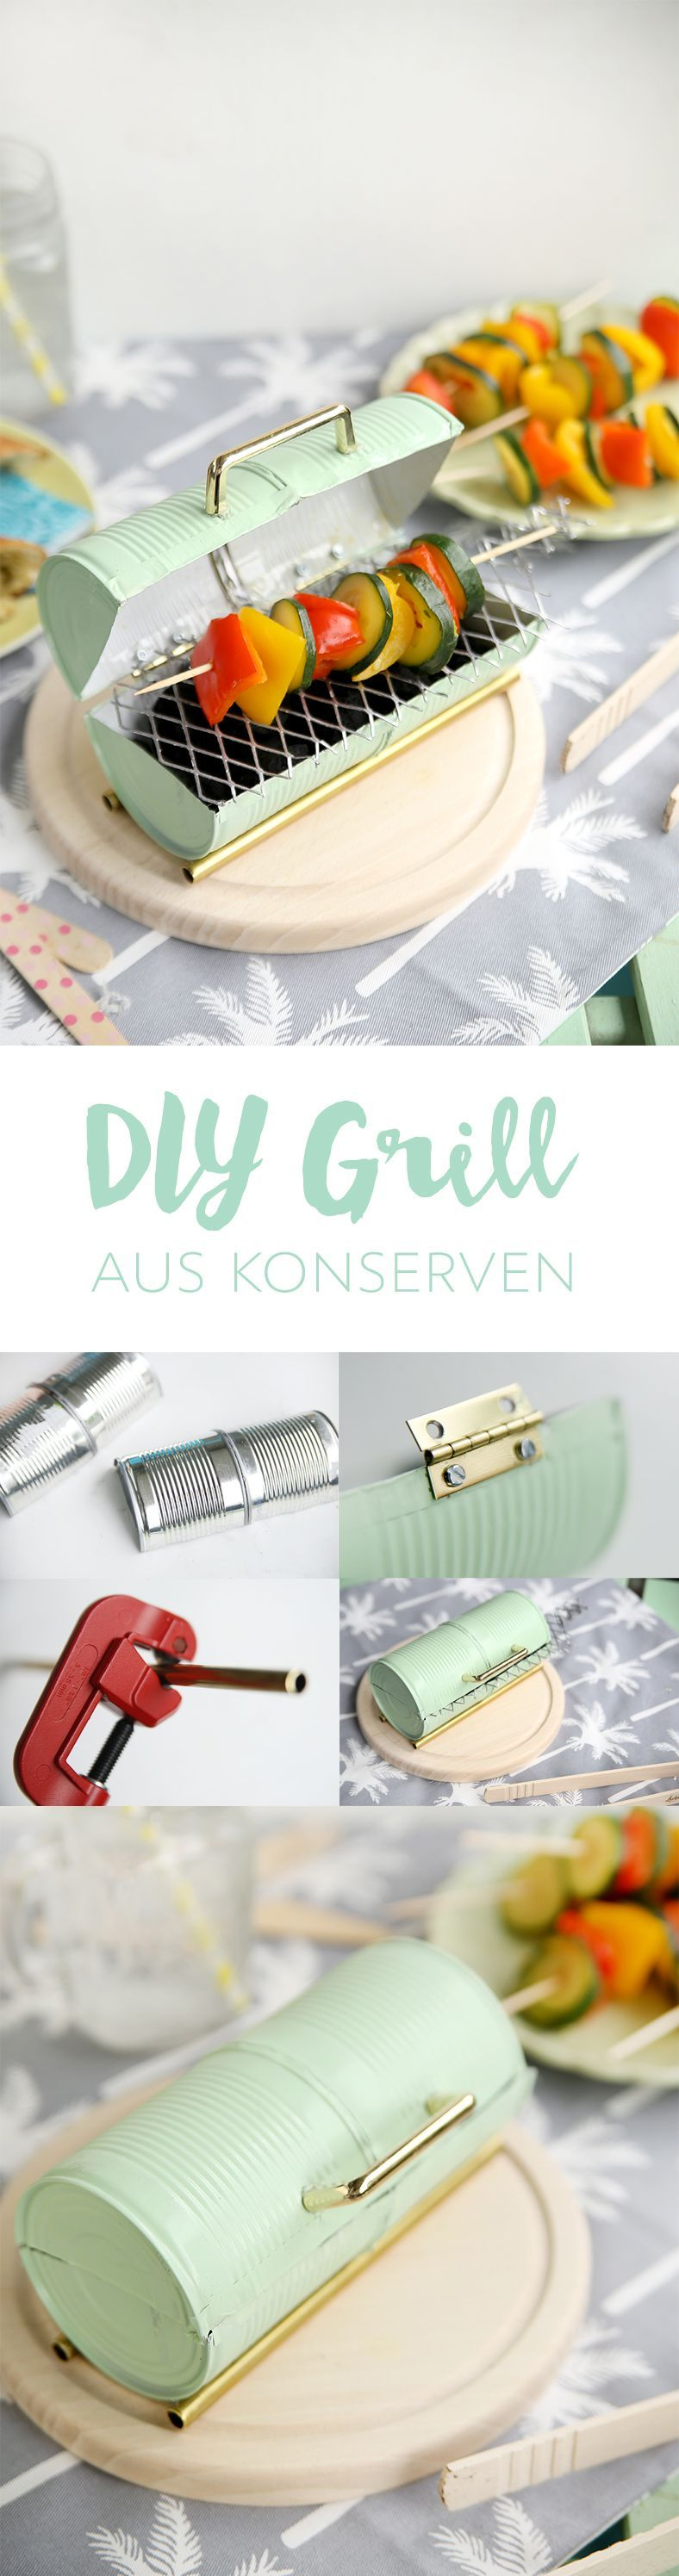 {DIY} Mini-grill made of canned food | my fairy dust -  Creative DIY idea to do it yourself: mini-grill tinkering out of cans – upcycling  - #Beadedjewelry #canned #DIY #dust #fairy #food #goldenearrings #jewelrydiybracelets #jewelryideasdiy #Minigrill